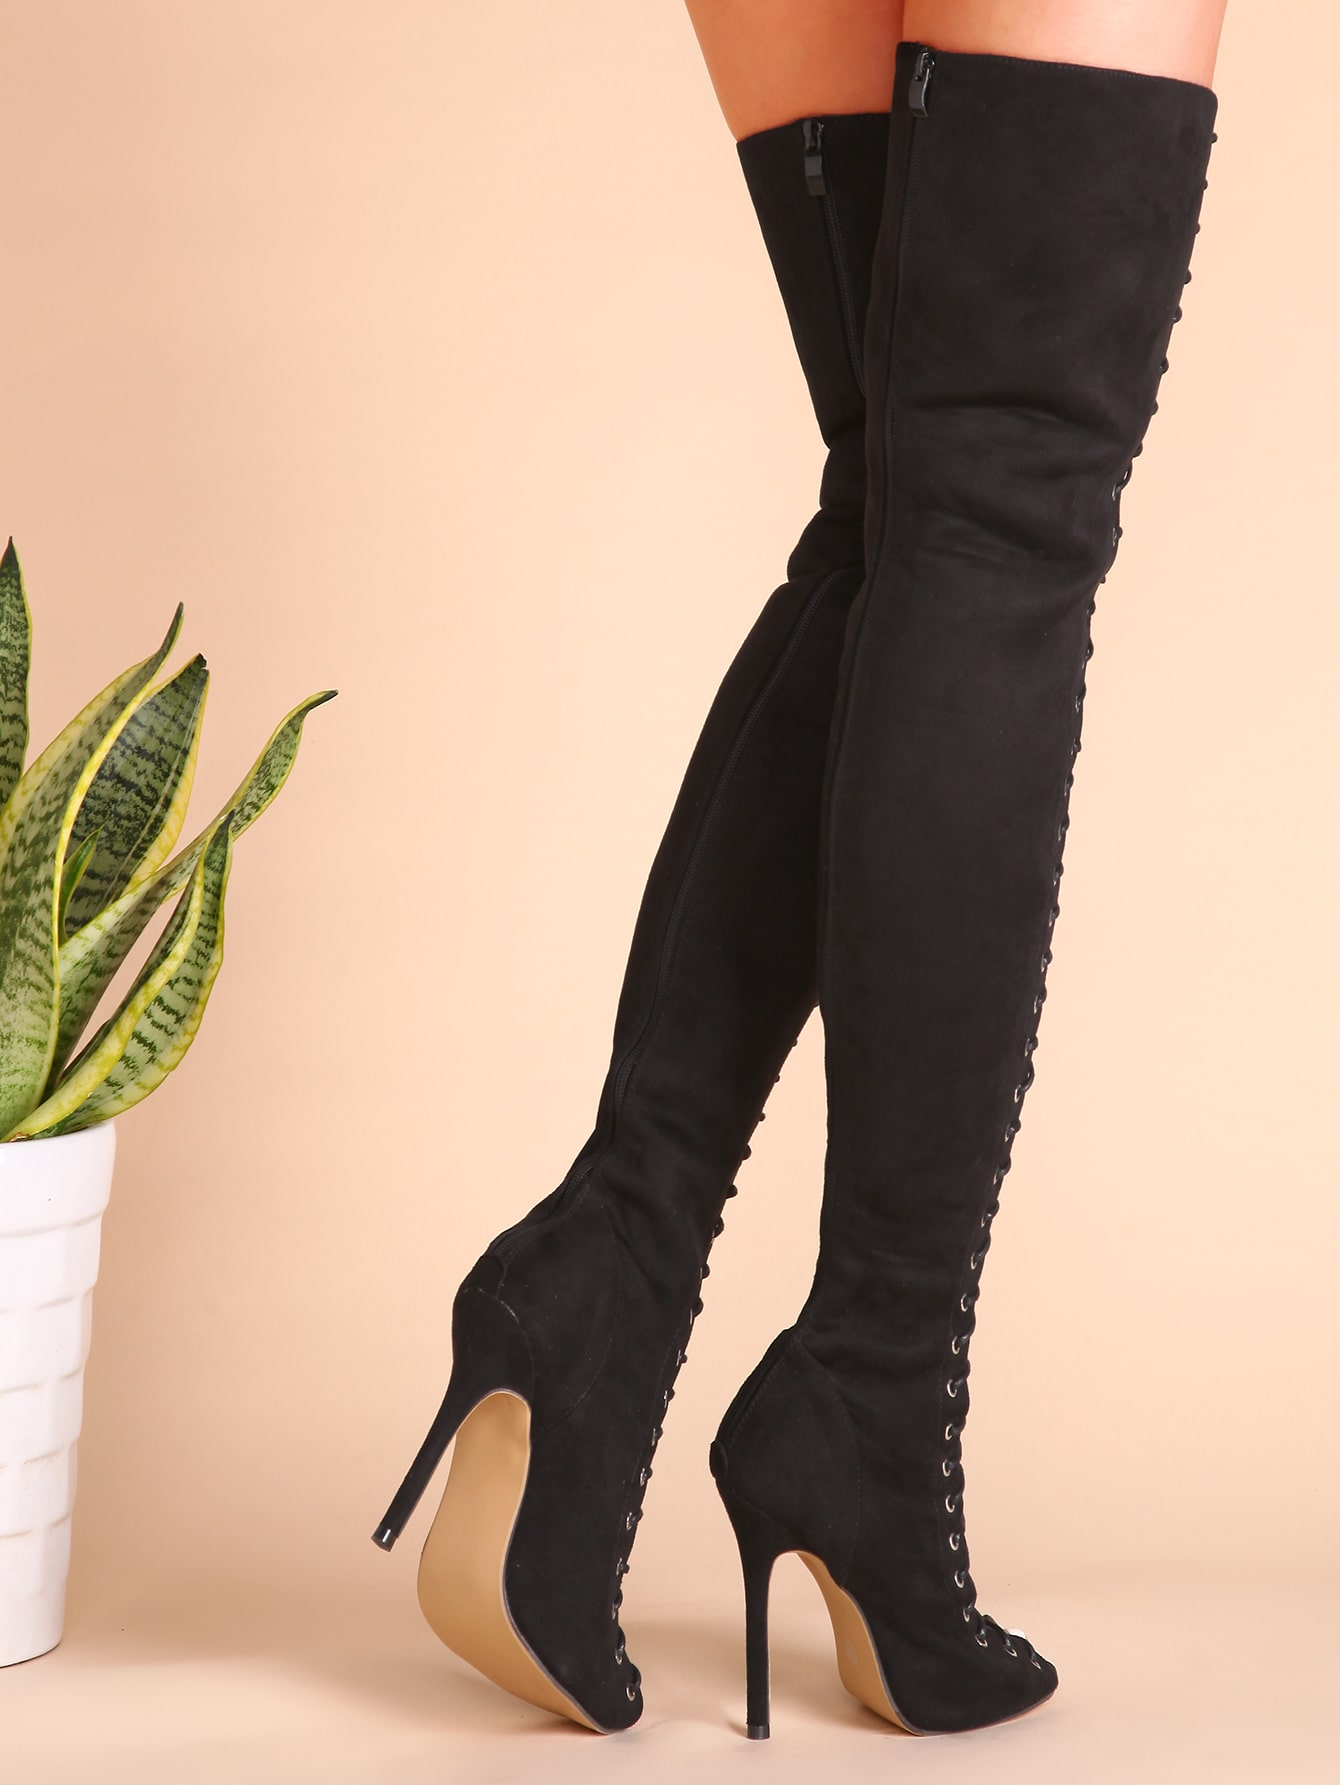 67923e34a49 Black Sexy Criss Cross Lace Up Suede Thigh High Boots EmmaCloth-Women Fast Fashion  Online